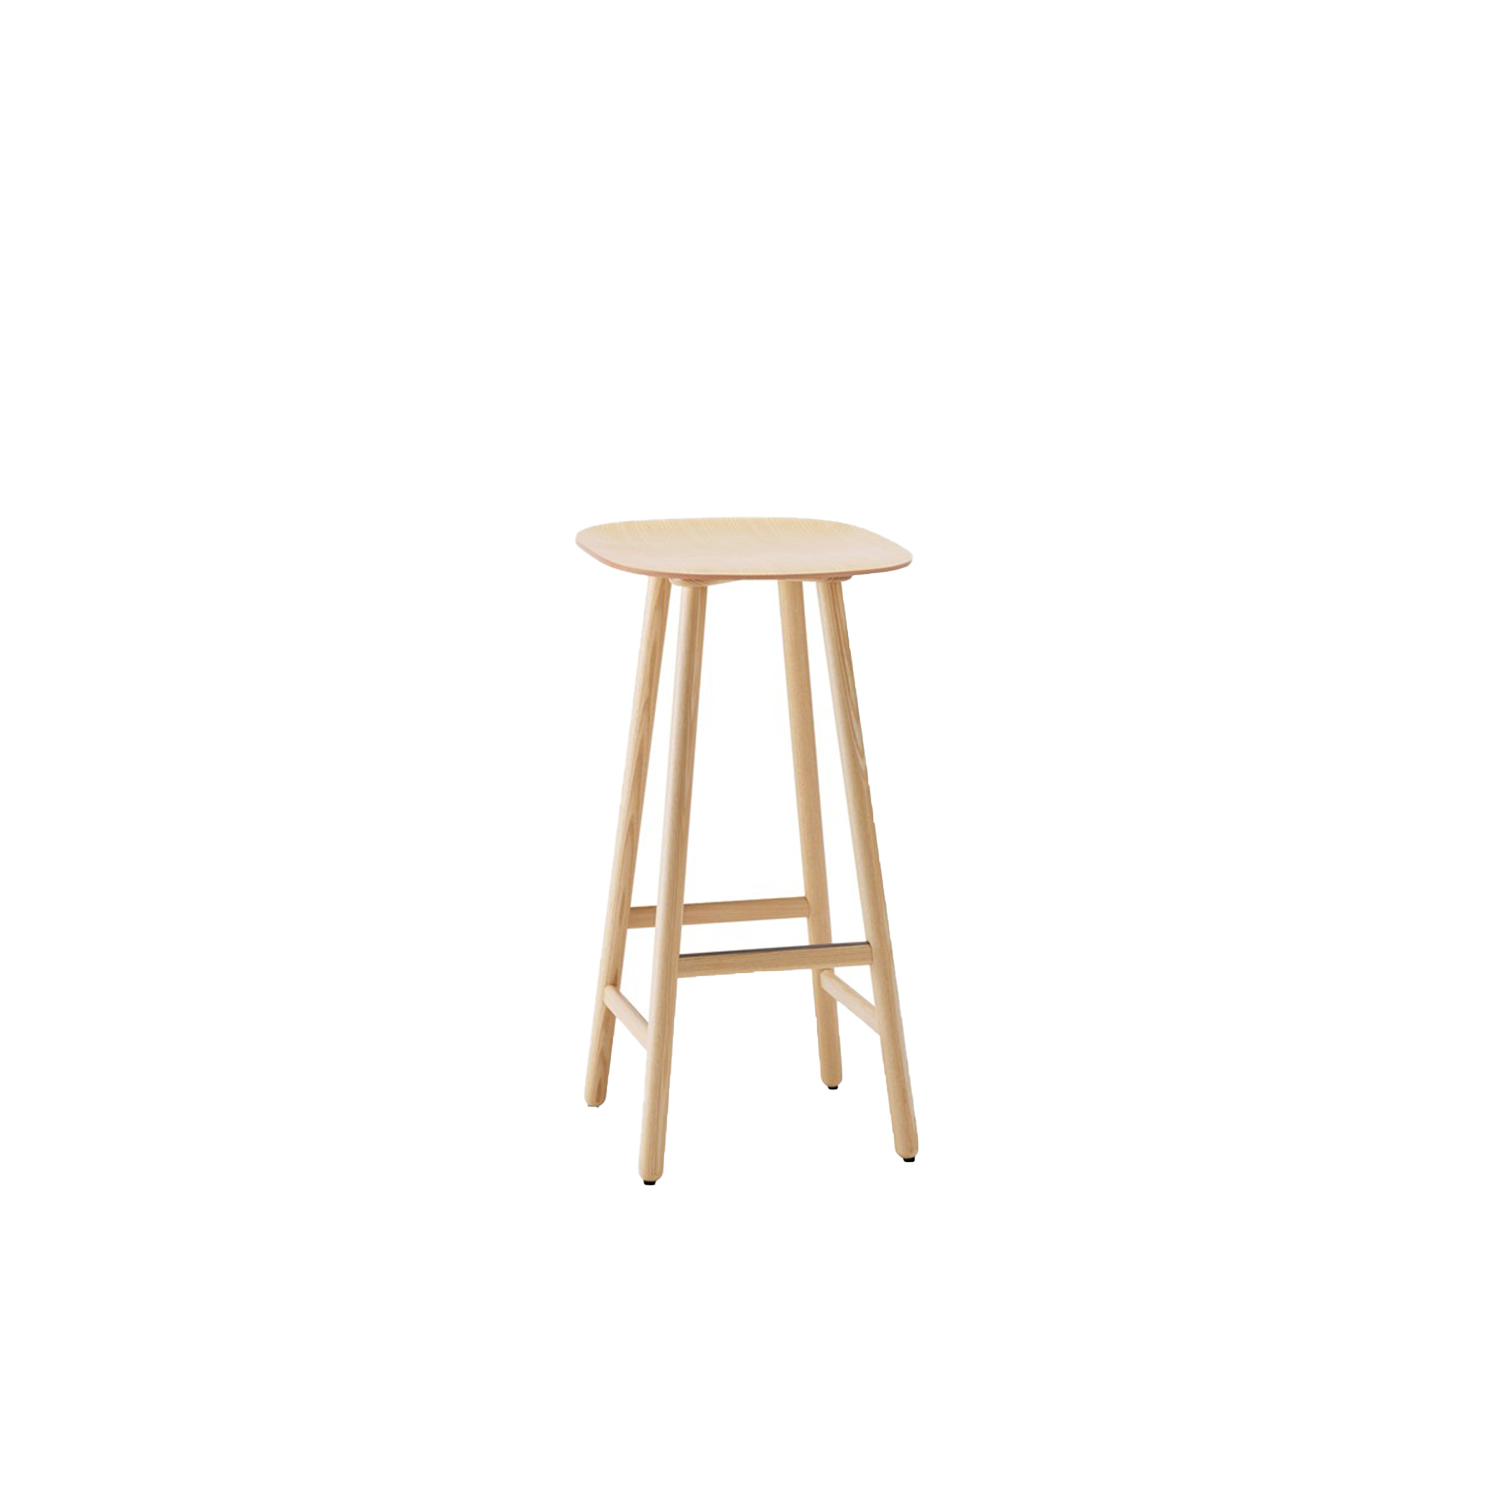 Shell Low Barstool - Shell stool (2015) has the clean lines and innovative combination of materials that are the signature features of Scandinavian design. Like a chair, Shell has a back and front, with a hint of an upward slope at the rear and a gently rounded front edge for enhanced comfort while seated. Available in solid oak, birch, ash, standard colors, standard stains on ash and white glazed oak or ash. Shell comes in a choice of three heights 450, 650 and 800 mm.  Choose a wooden seat or one upholstered in fabric or leather. The footrest of high stool has a stainless steel footrest protector.  The stool is available with cushion with a leather or fabric cover at an extra cost. Please enquire for more details. | Matter of Stuff